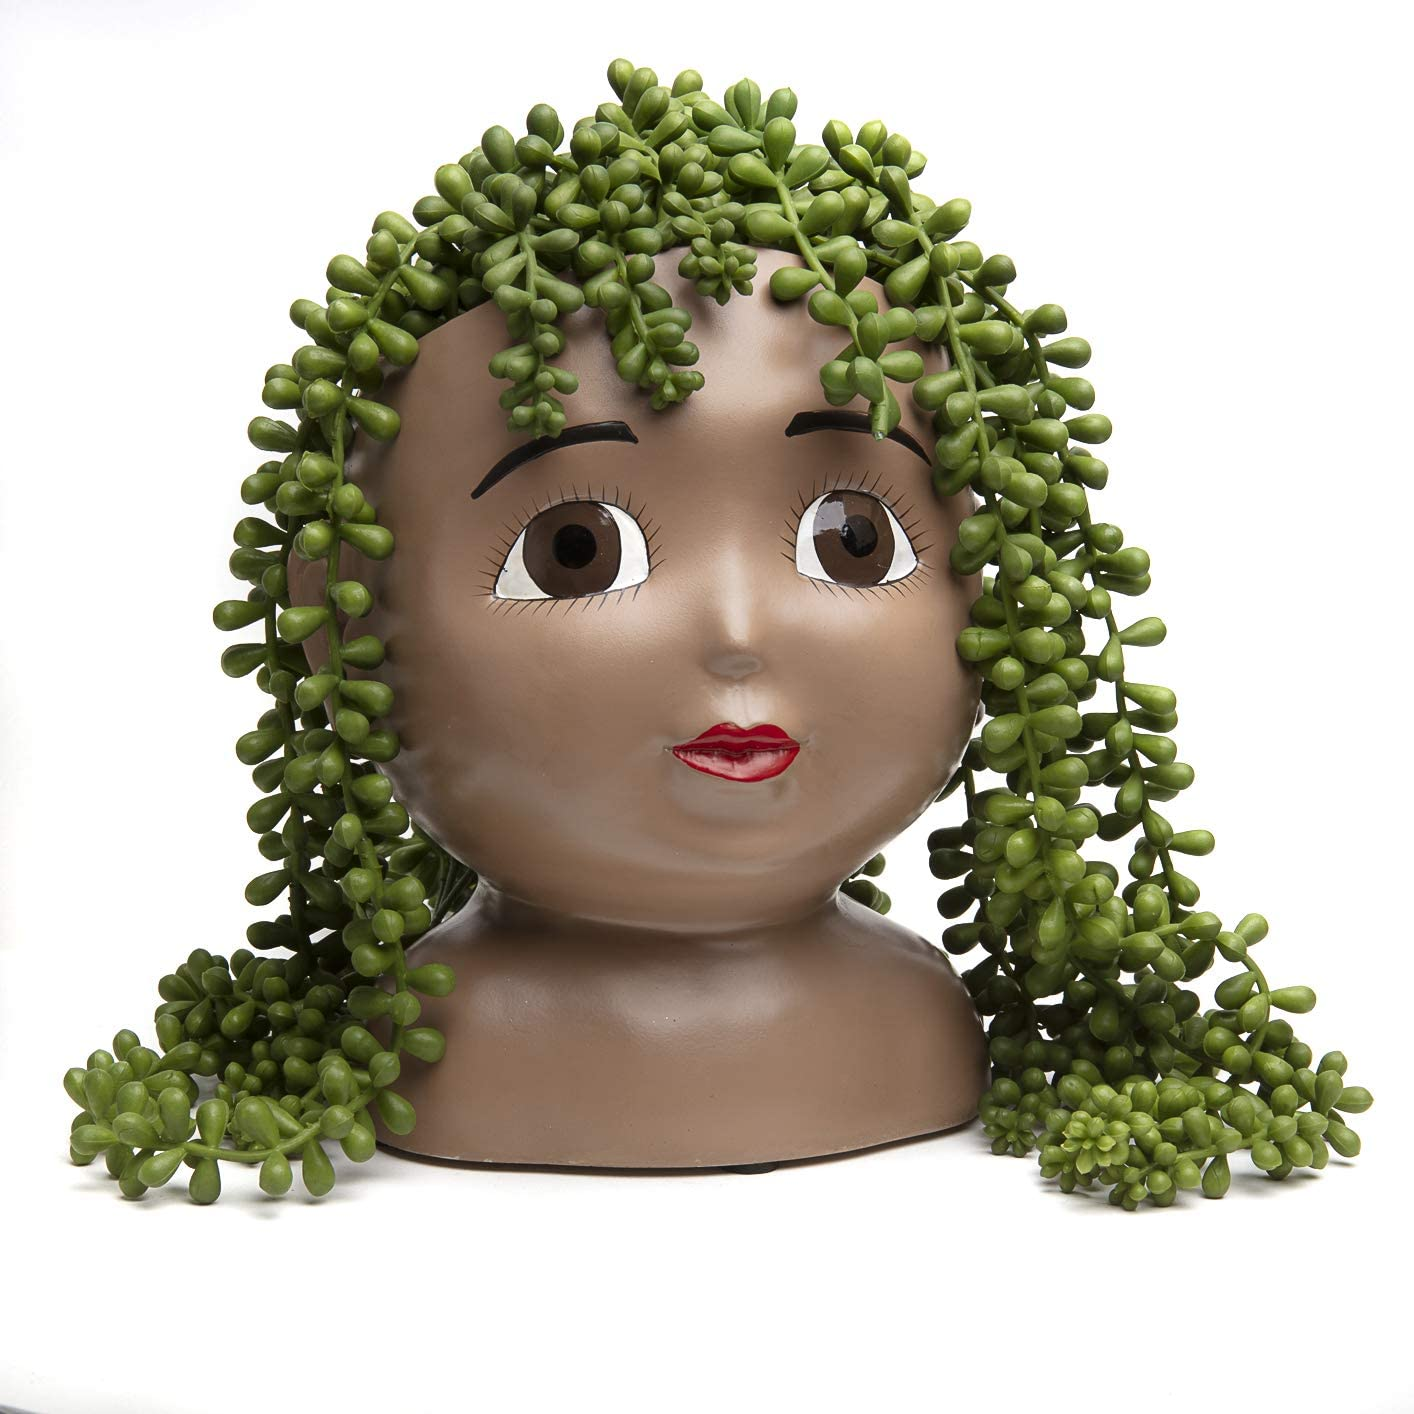 Head Planter Pot – Face Planters for Indoor and Outdoor Plants – Unique Garden Planters – Resin Succulent Face Planter for Succulents – Open Brown Eyes Female Head Planter – Unusual Pots for Plants